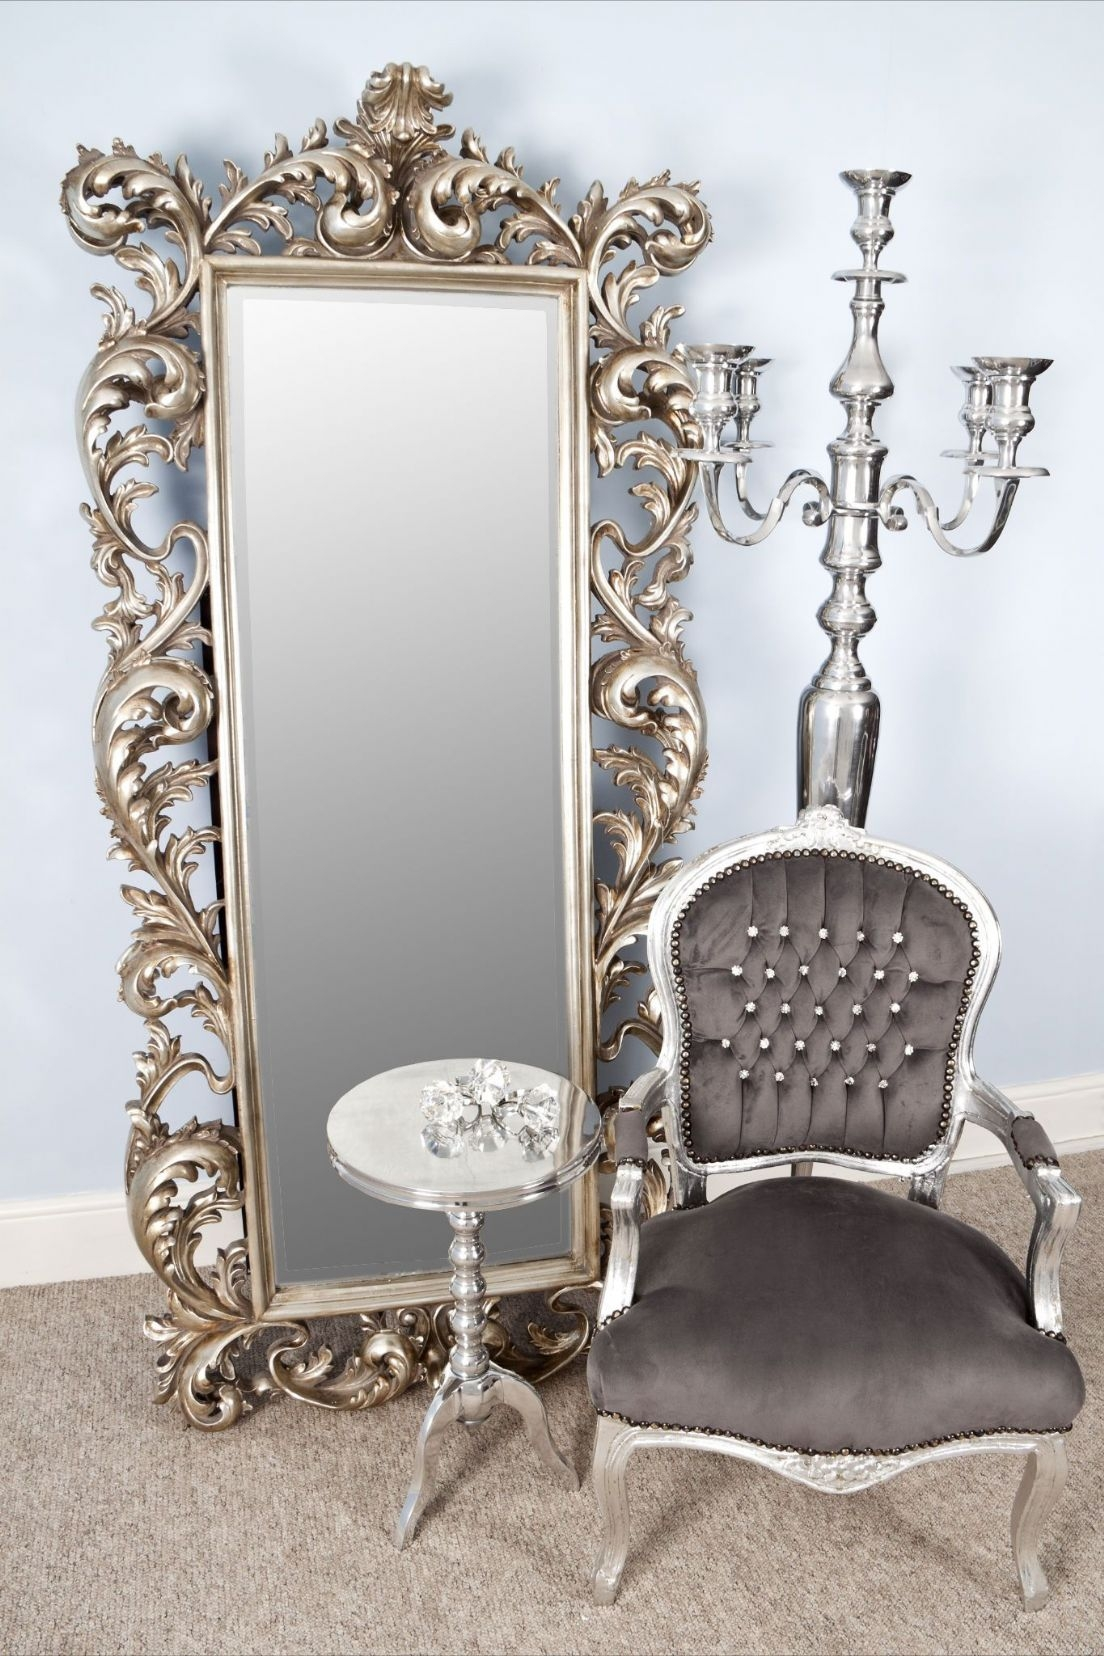 Bedroom Furniture Window Frame Mirror Antique Wall Mirrors Wall Regarding Large Mirrors Online (View 3 of 15)